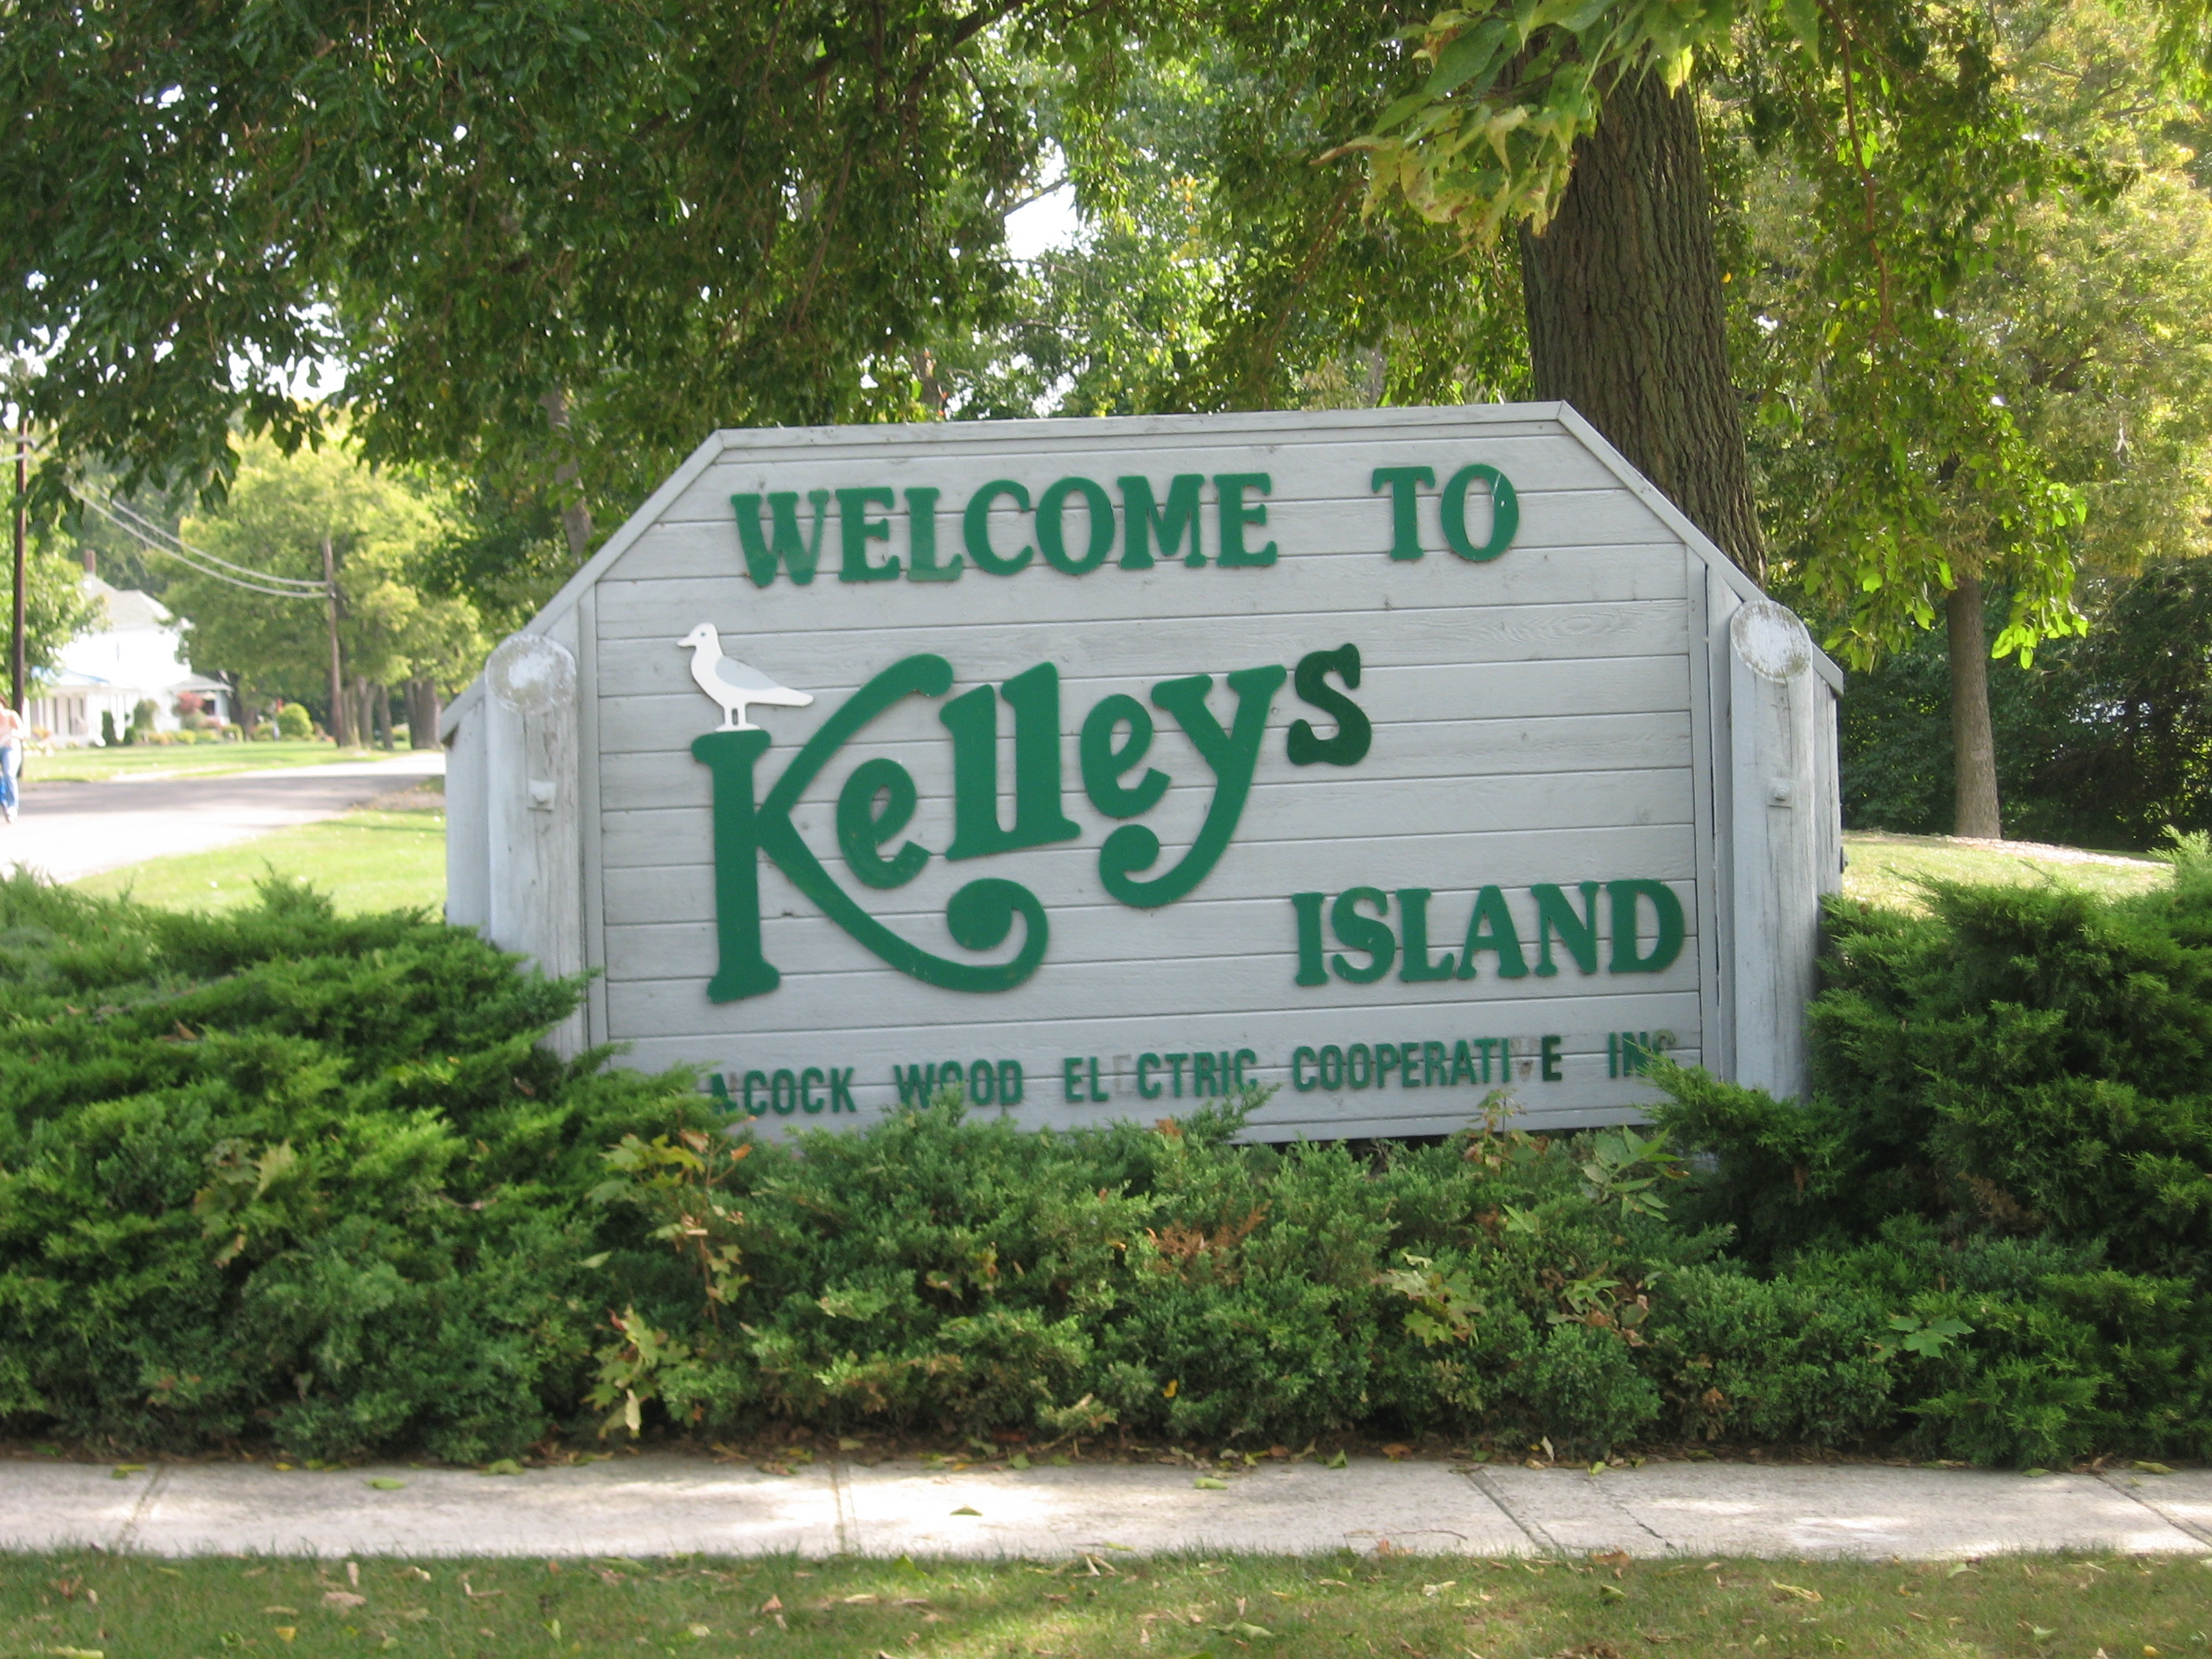 hotels on kelleys island ohio Choose marriott hotels & resorts in kelleys island and find everything you need for an ideal stay.